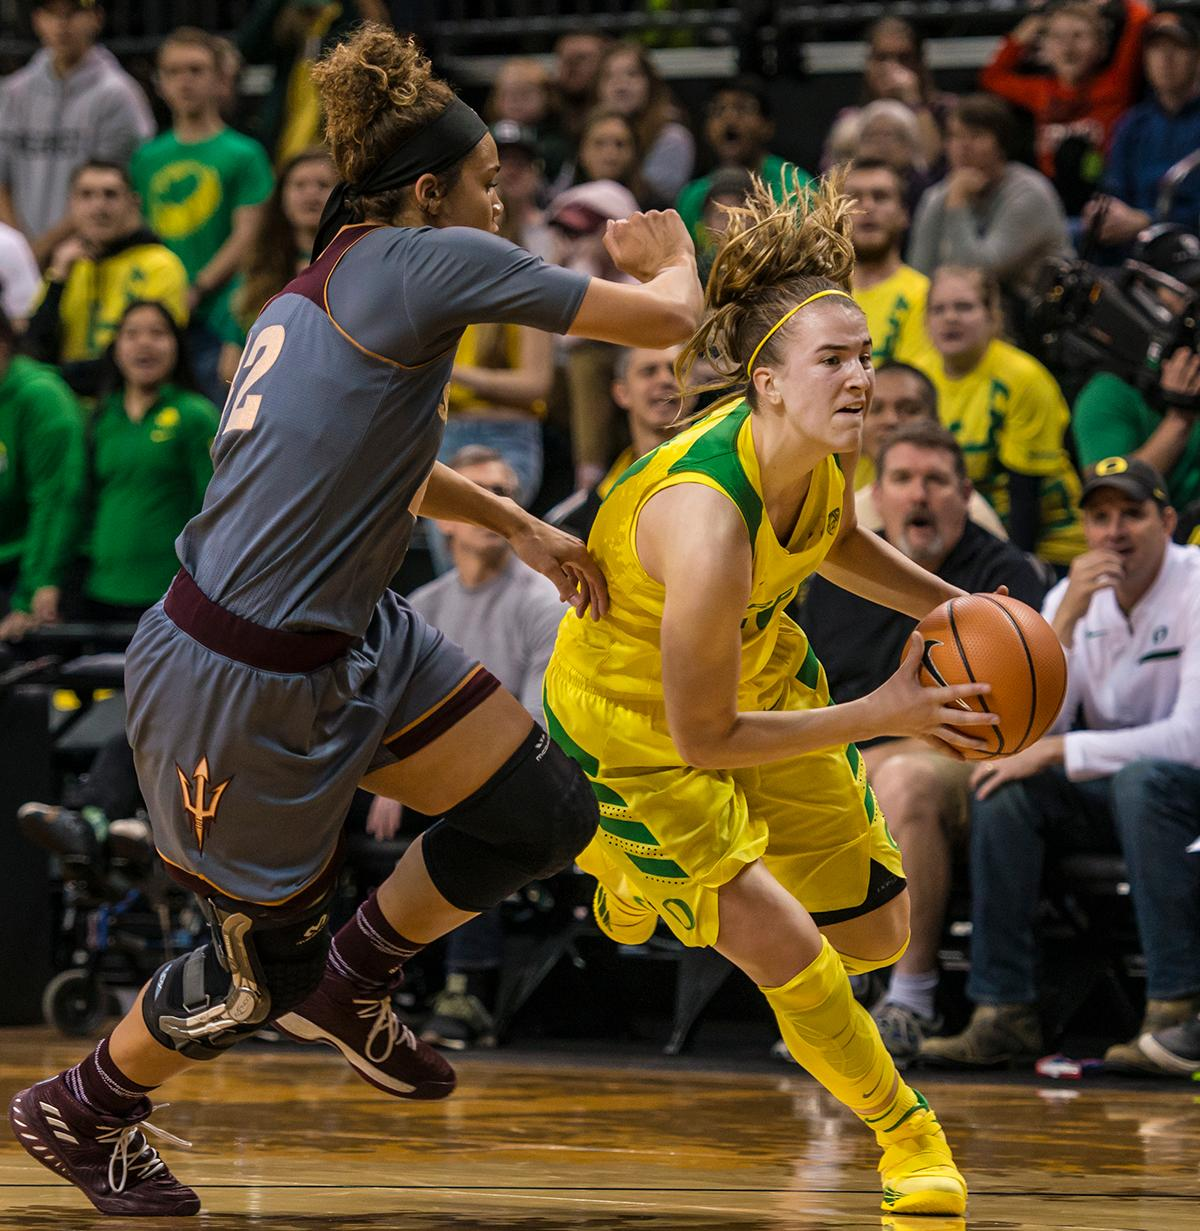 Oregon Ducks Sabrina Ionescu (#20) makes her way to the basket. The Oregon Ducks defeated the Arizona State Sun Devils 74-64 on Sunday night at Matthew Knight Arena. Ruthy Hebard shot a perfect 9-9 bringing in 20 points for the Ducks. Sabrina Ionescu added 26 points, six rebounds, and five assists. The Ducks No. 8 AP poll ranking is a first in program history and they will face rival Oregon State next weekend on January 19th in Corvallis. Photo by Colin Houck, Oregon News Lab